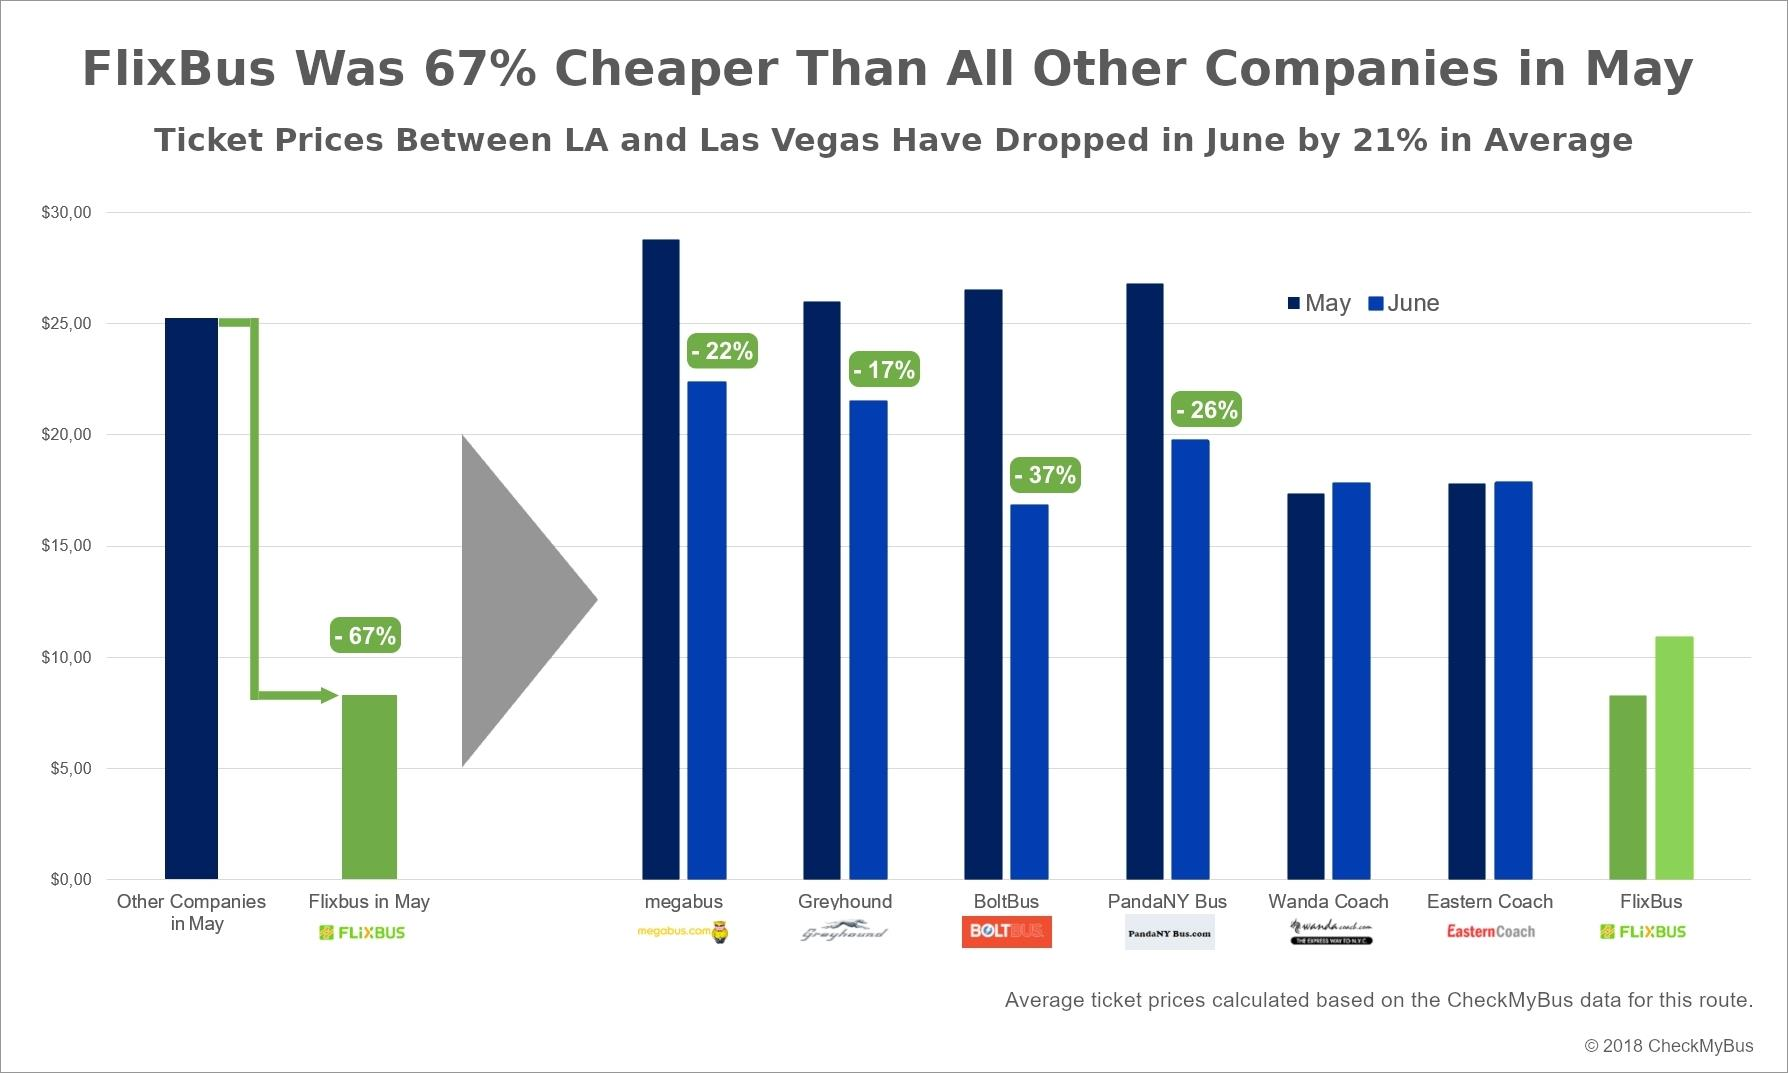 FlixBus Was 67% Cheaper Than All Other Companies in May - Ticket Prices Between LA and Las Vegas Have Dropped in June by 21% in Average